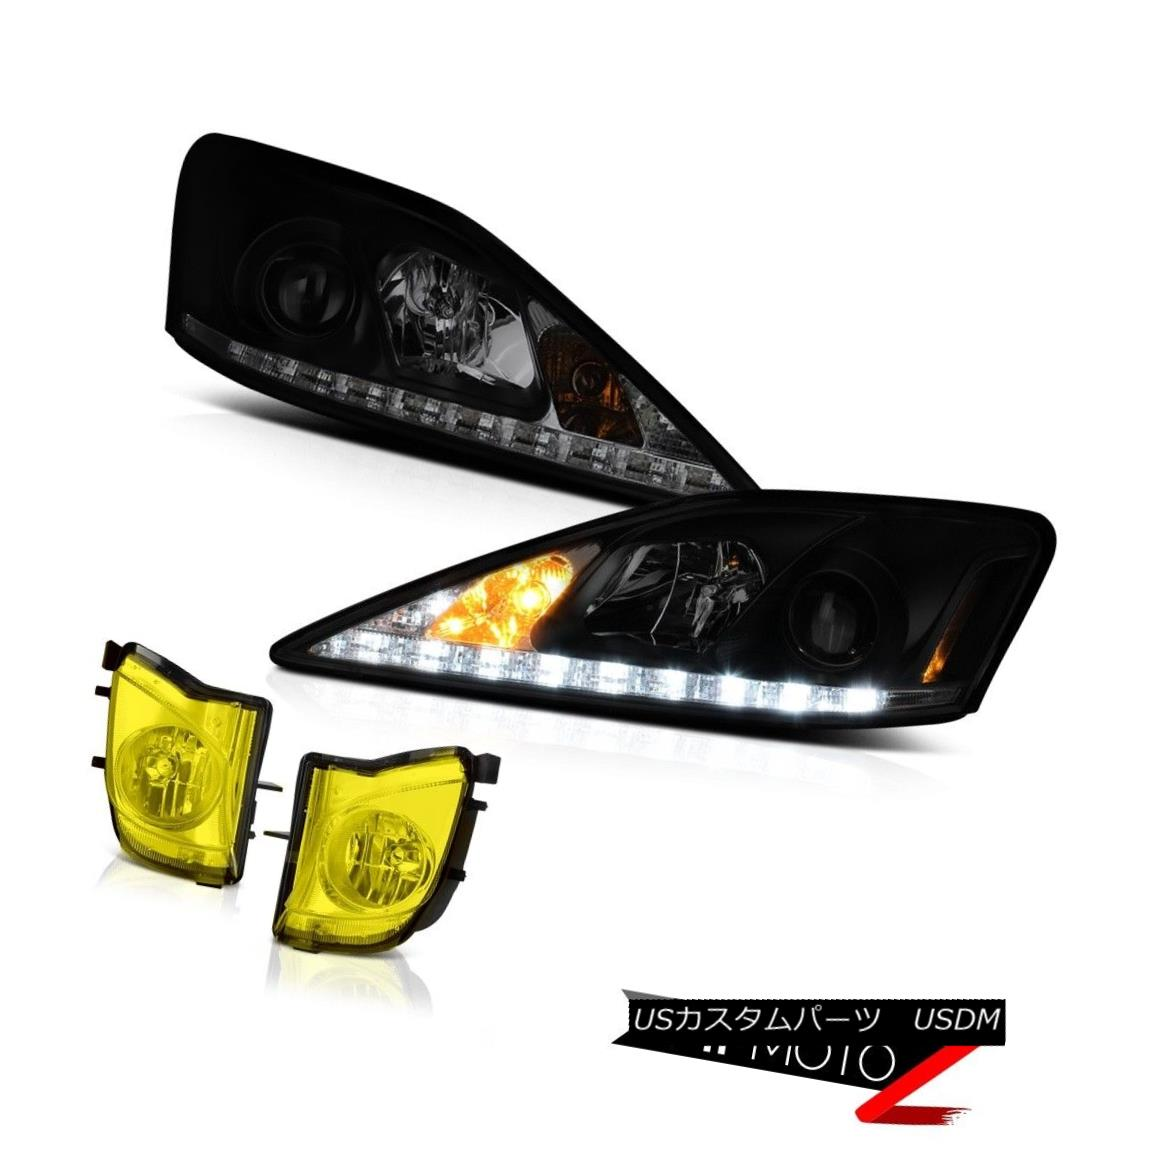 ヘッドライト JDM Golden Yellow Bumper Foglights SINISTER BLACK LED STRIP Projector Headlights JDMゴールデンイエローバンパーフォグライトSINISTER BLACK LED STRIPプロジェクターヘッドライト